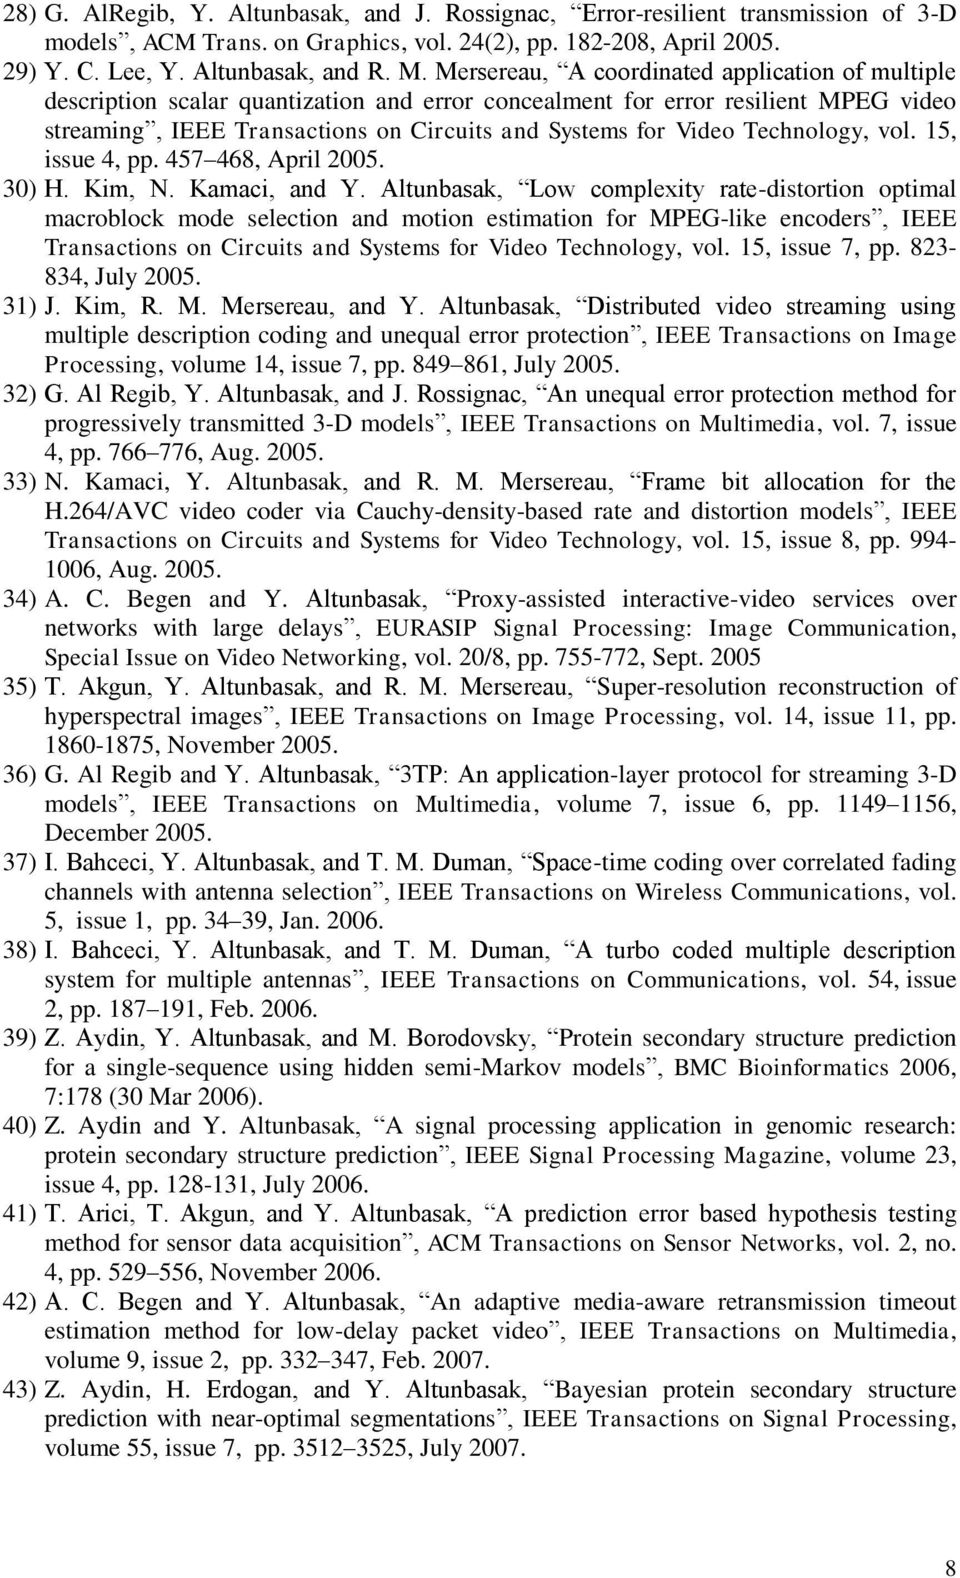 Technology, vol. 15, issue 4, pp. 457 468, April 2005. 30) H. Kim, N. Kamaci, and Y.